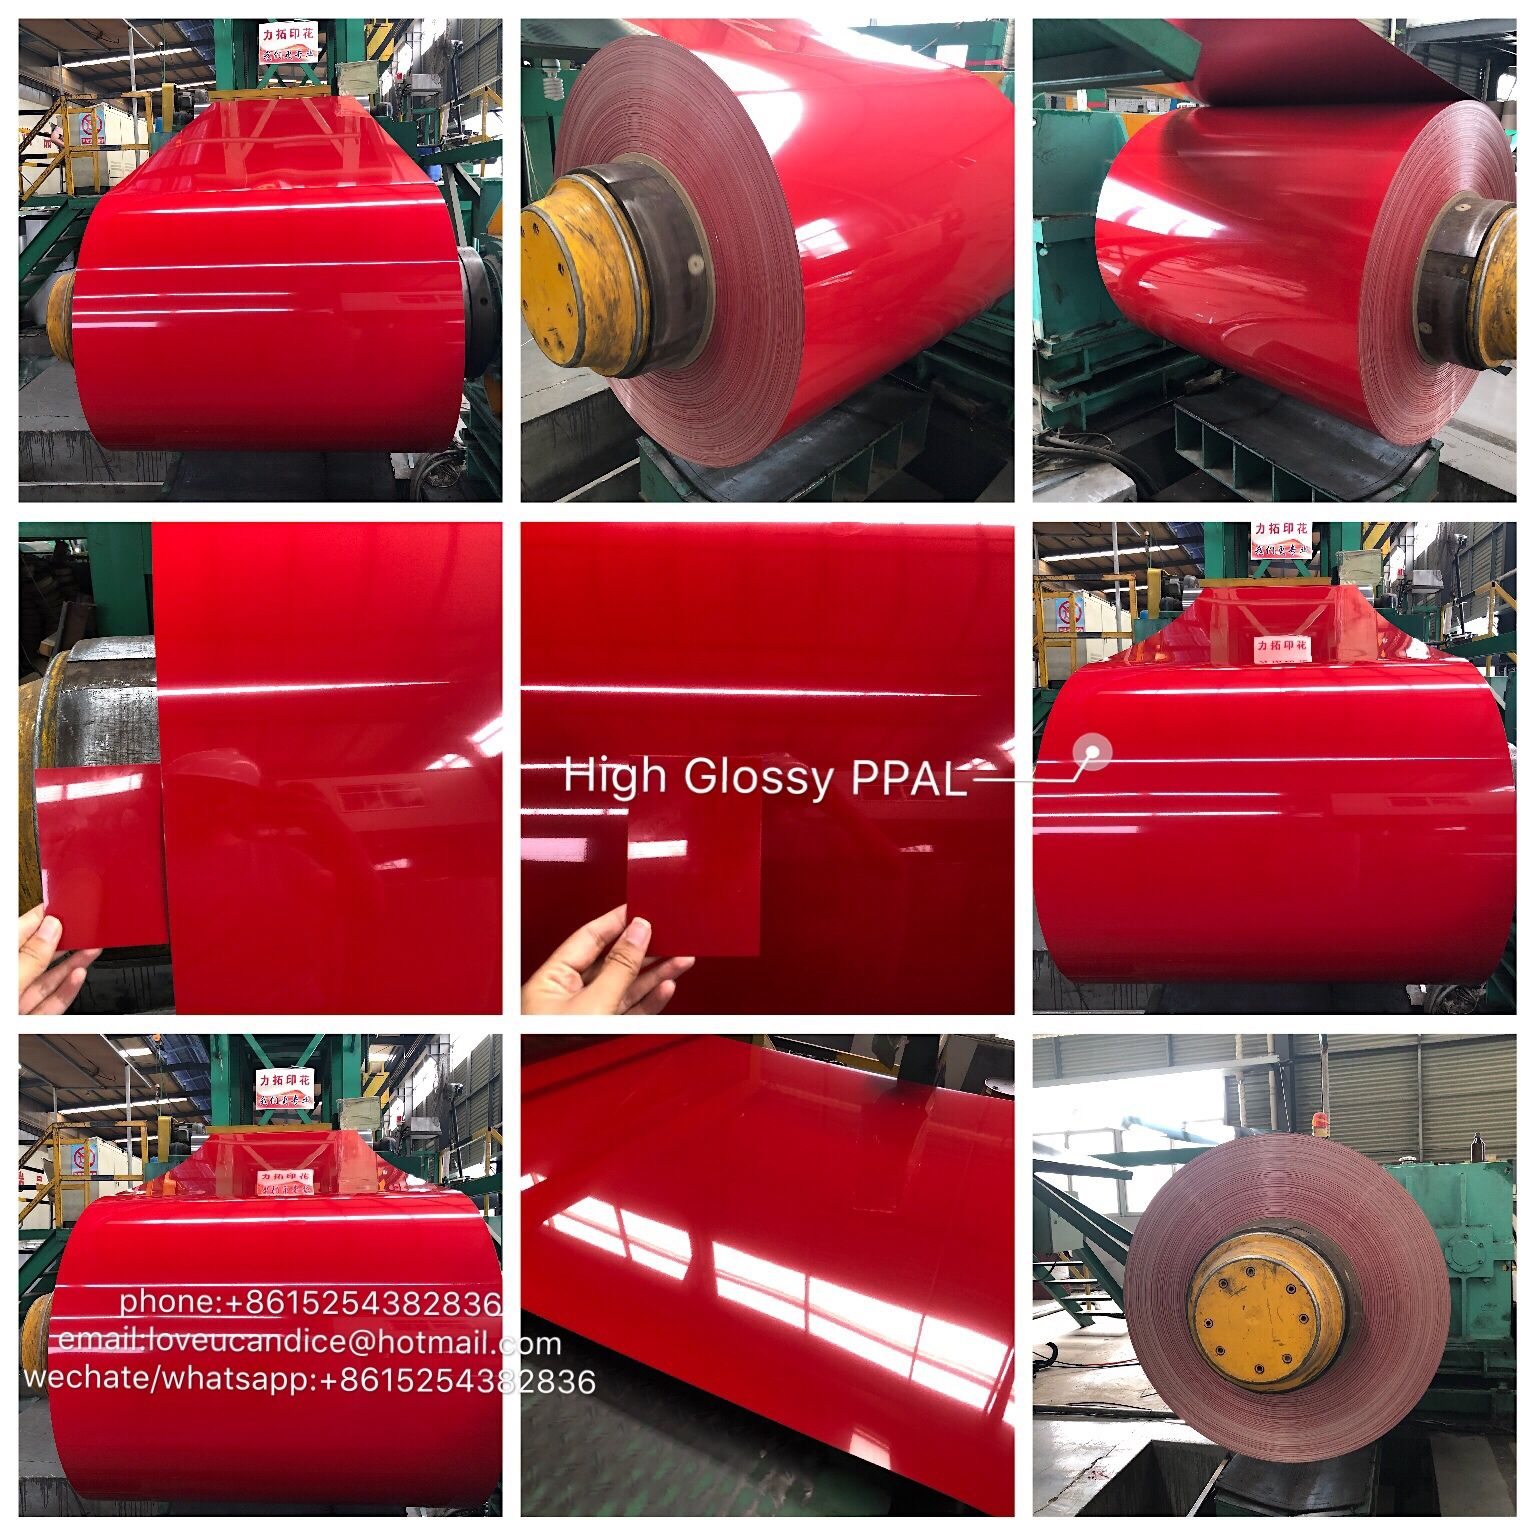 85 Glossy Red Ppal Coil Factory Price For Color Coated Aluminum Coil 1 3 5 8series Any Inquiry Pls Contact Me Wechate Whatsapp 861525438 Roofing Color Glossy